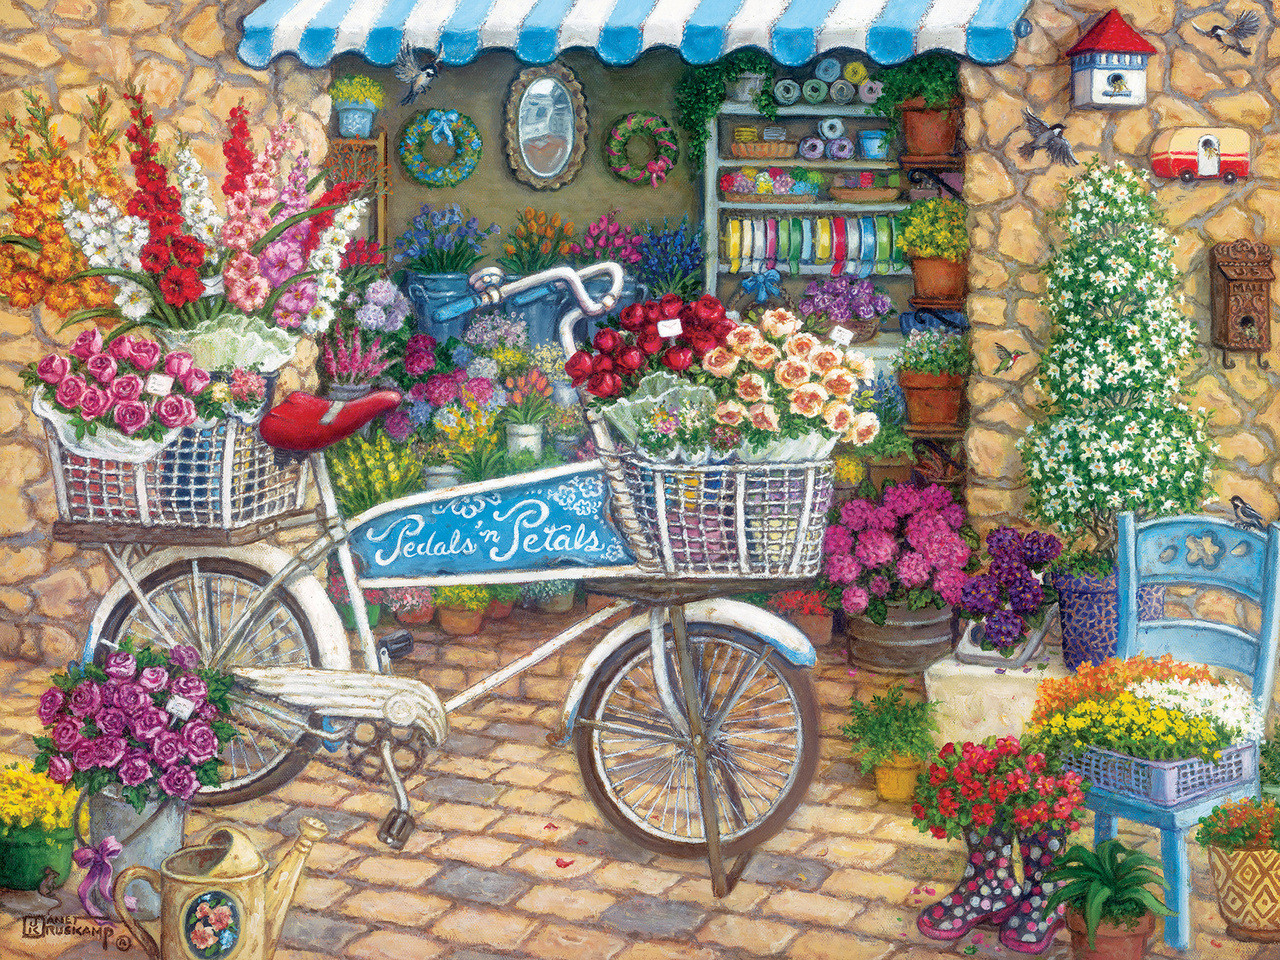 Pedals 'n' Petals - 275pc Easy Handling Puzzle by Cobble Hill